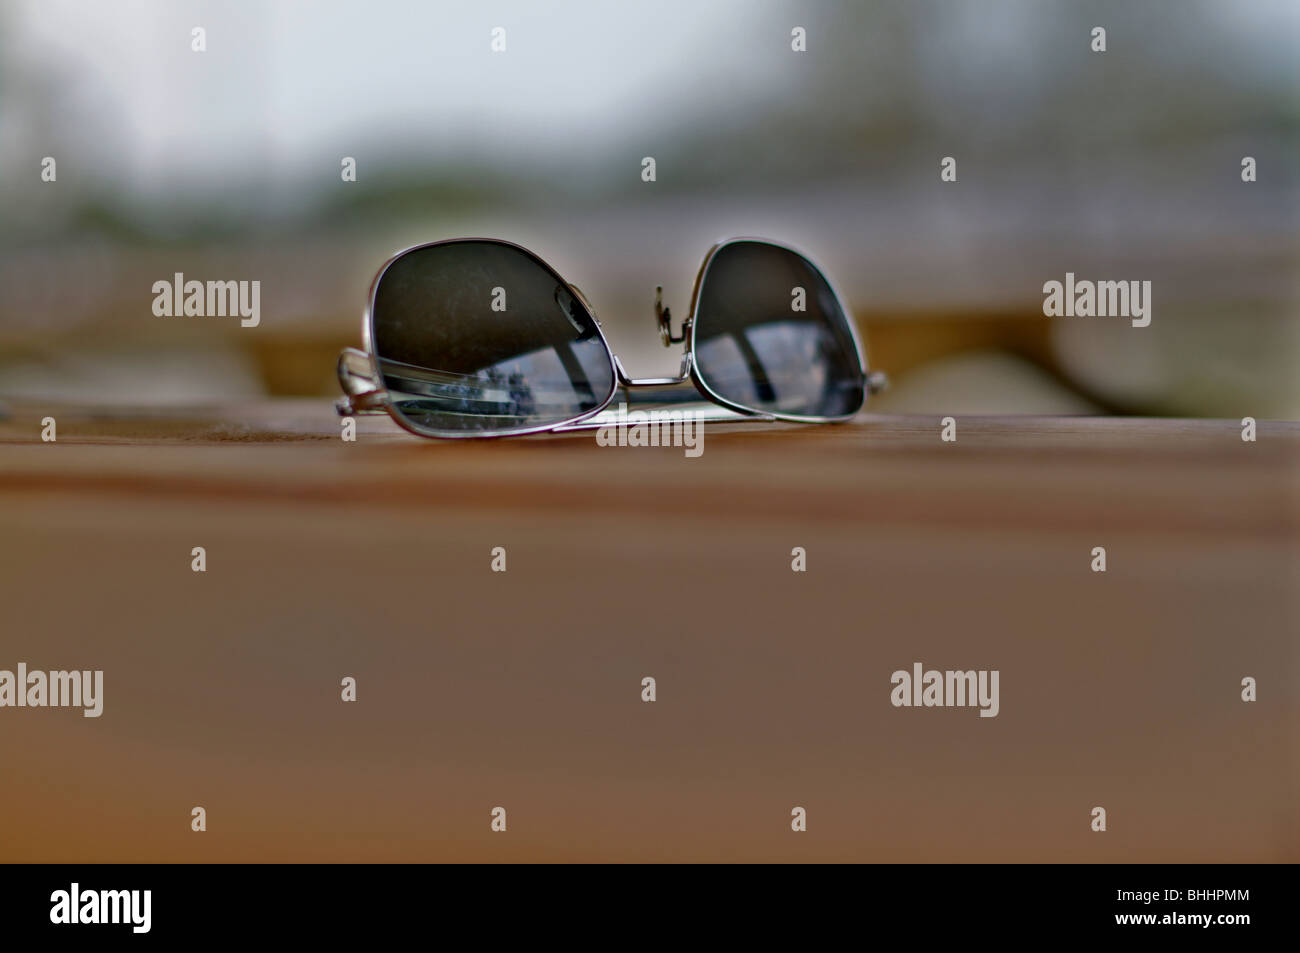 HDR capture of aviator sunglasses sitting on a picnic table with a very shallow depth of field. - Stock Image